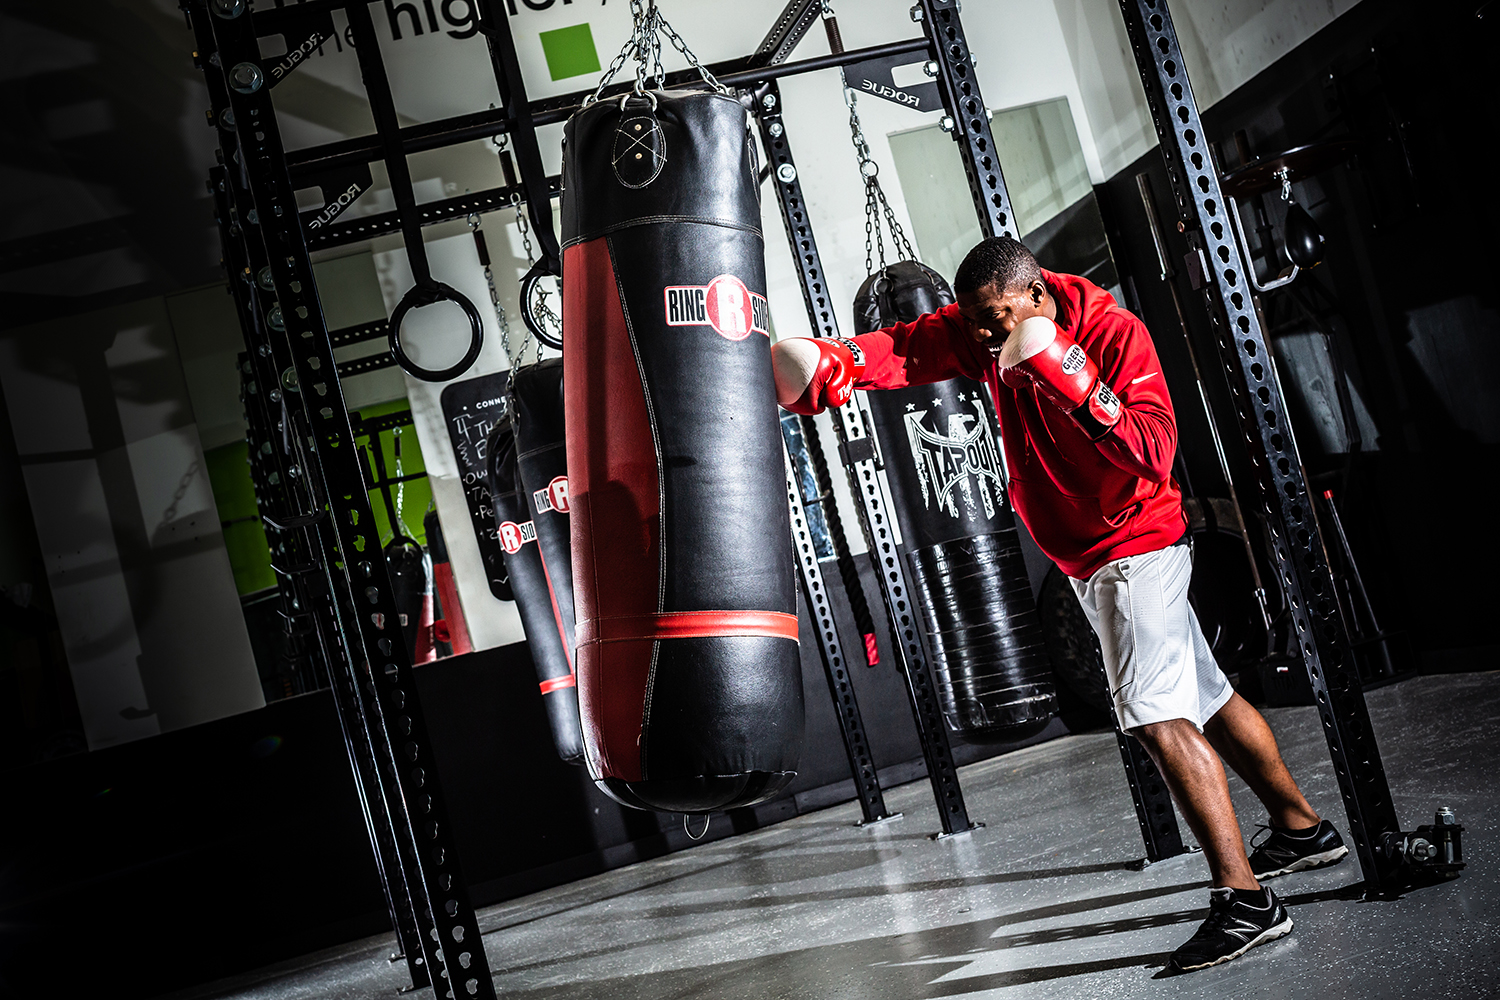 Man in red hoodie punching bag